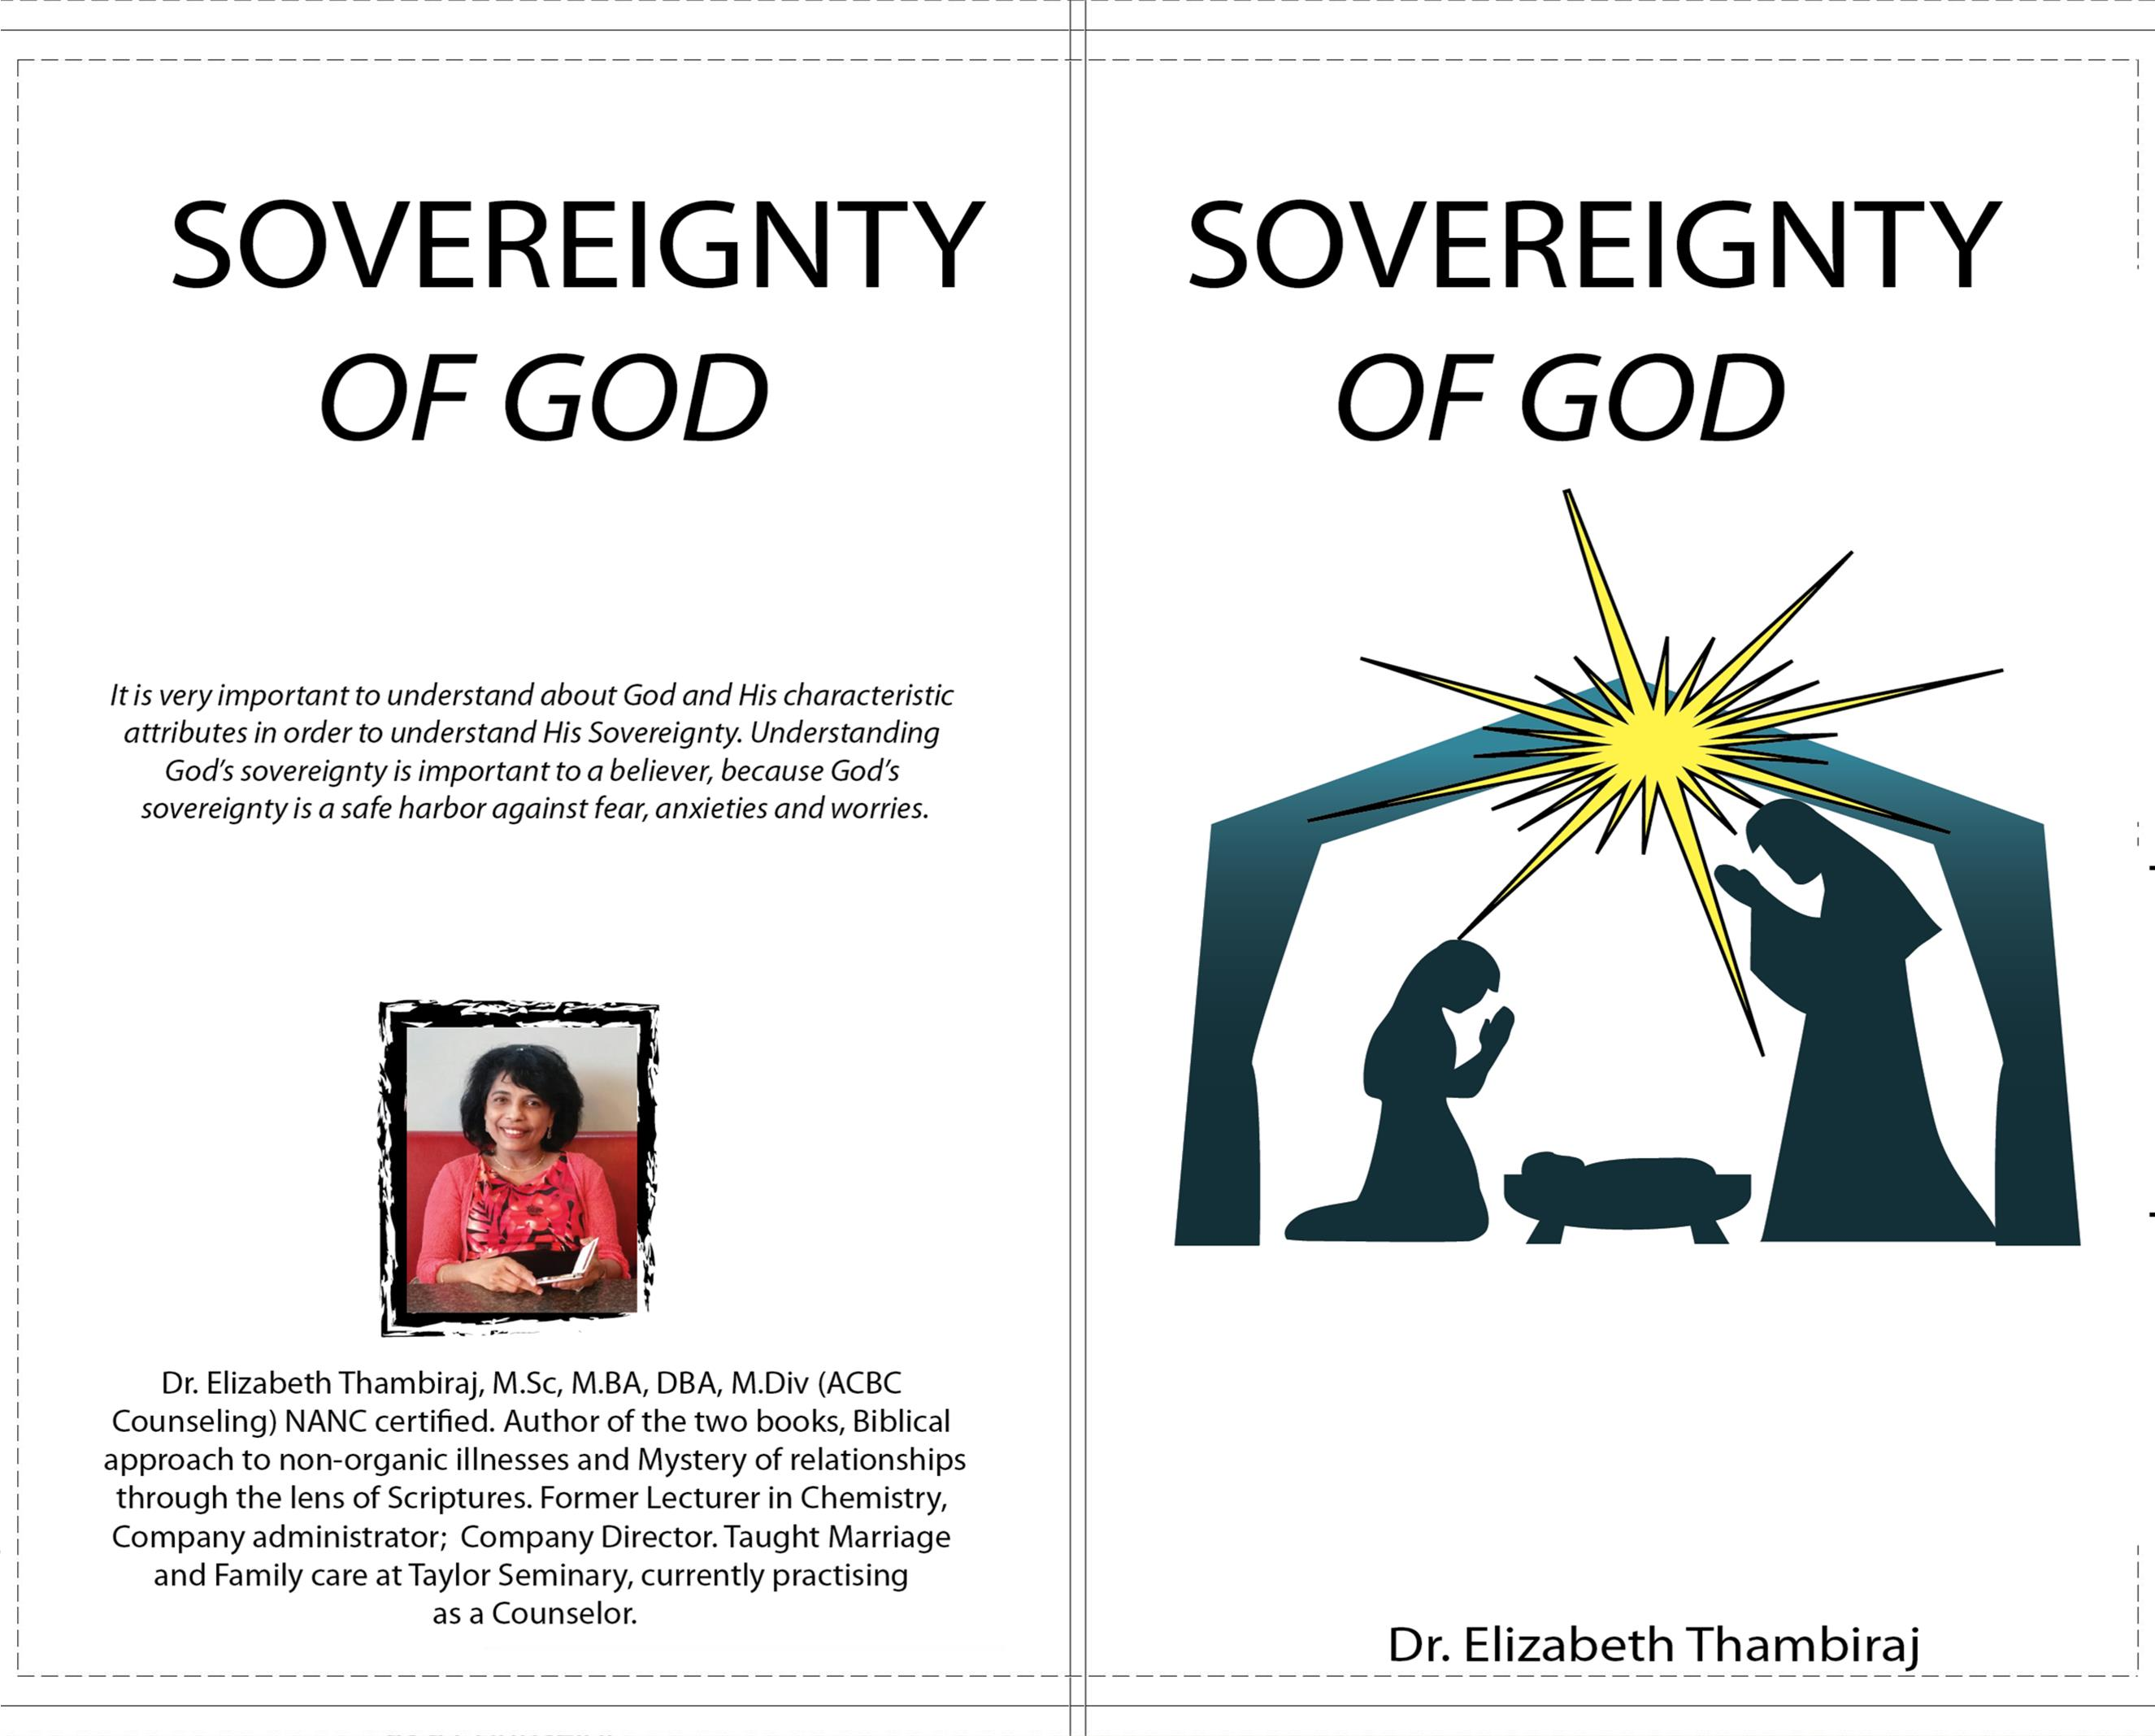 Sovereignty of God cover image